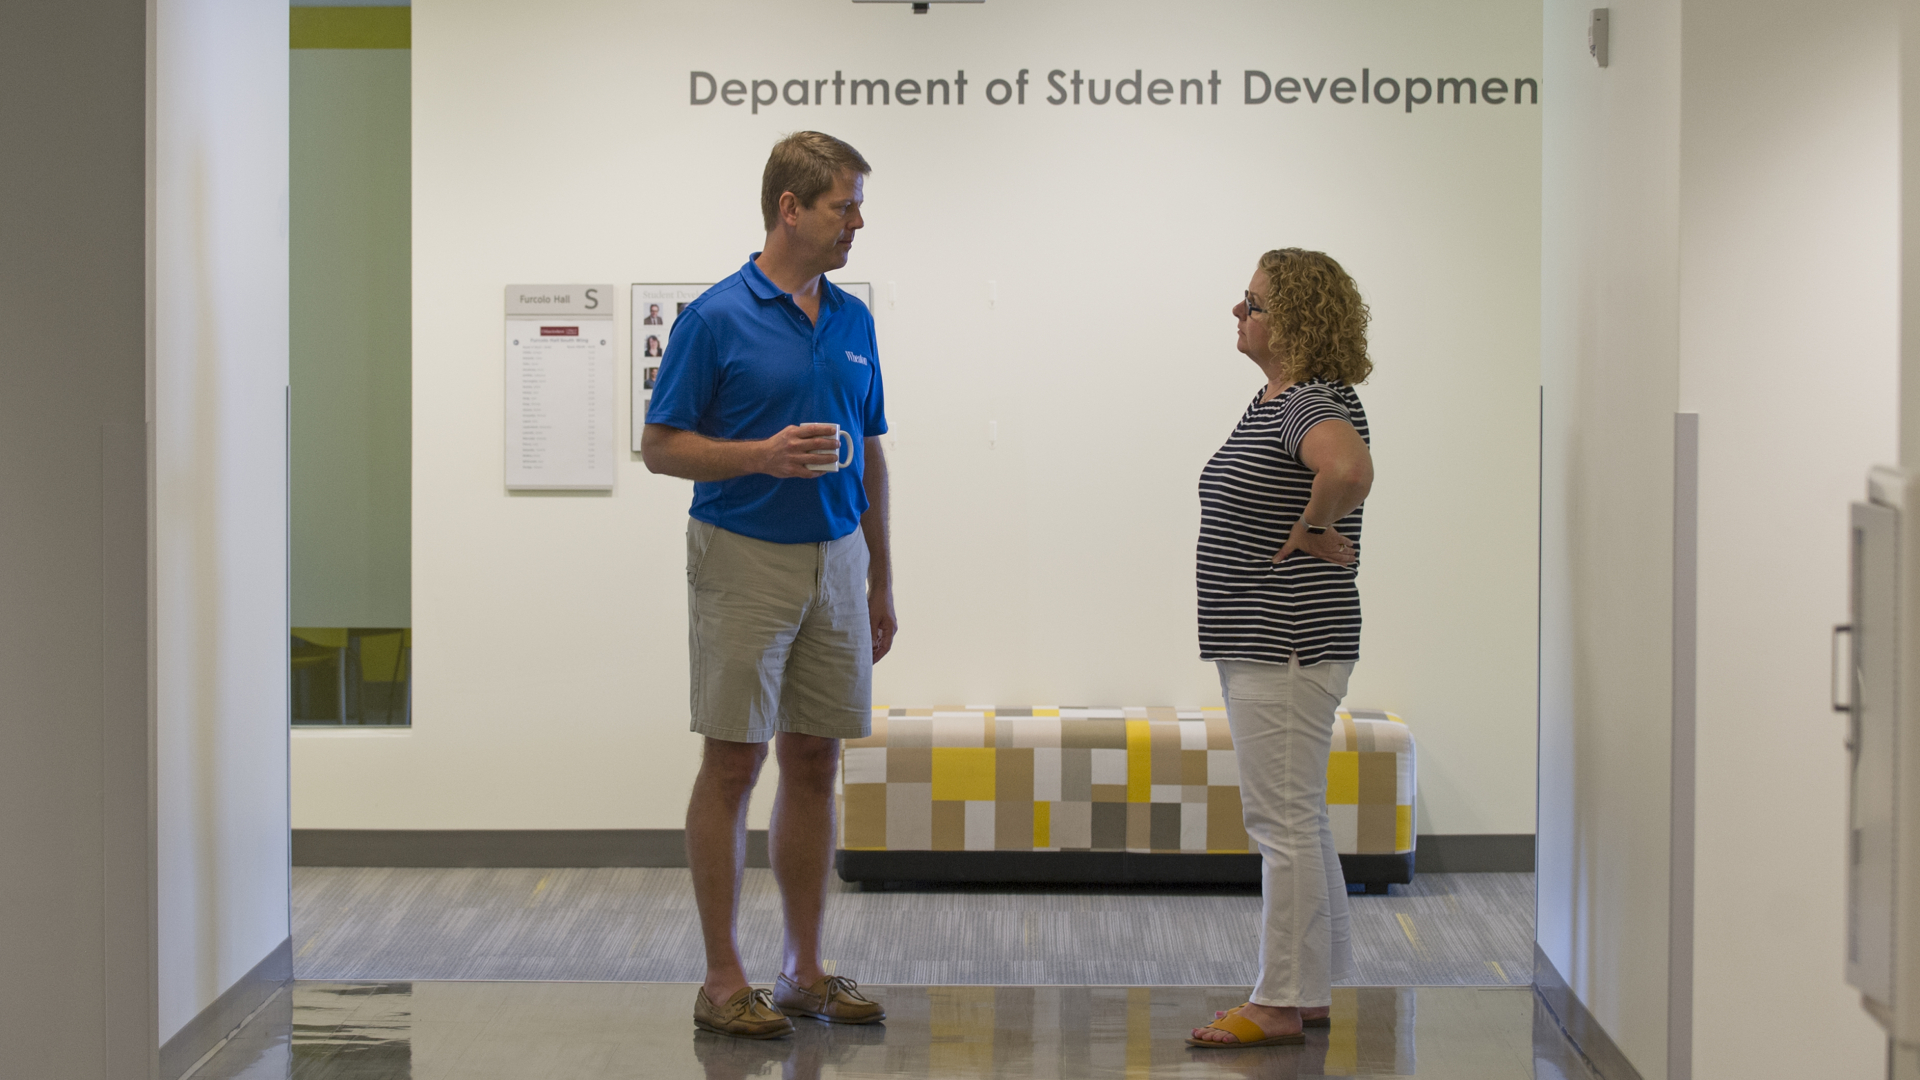 Ray and Judy standing in hallway in front of Student Development sign